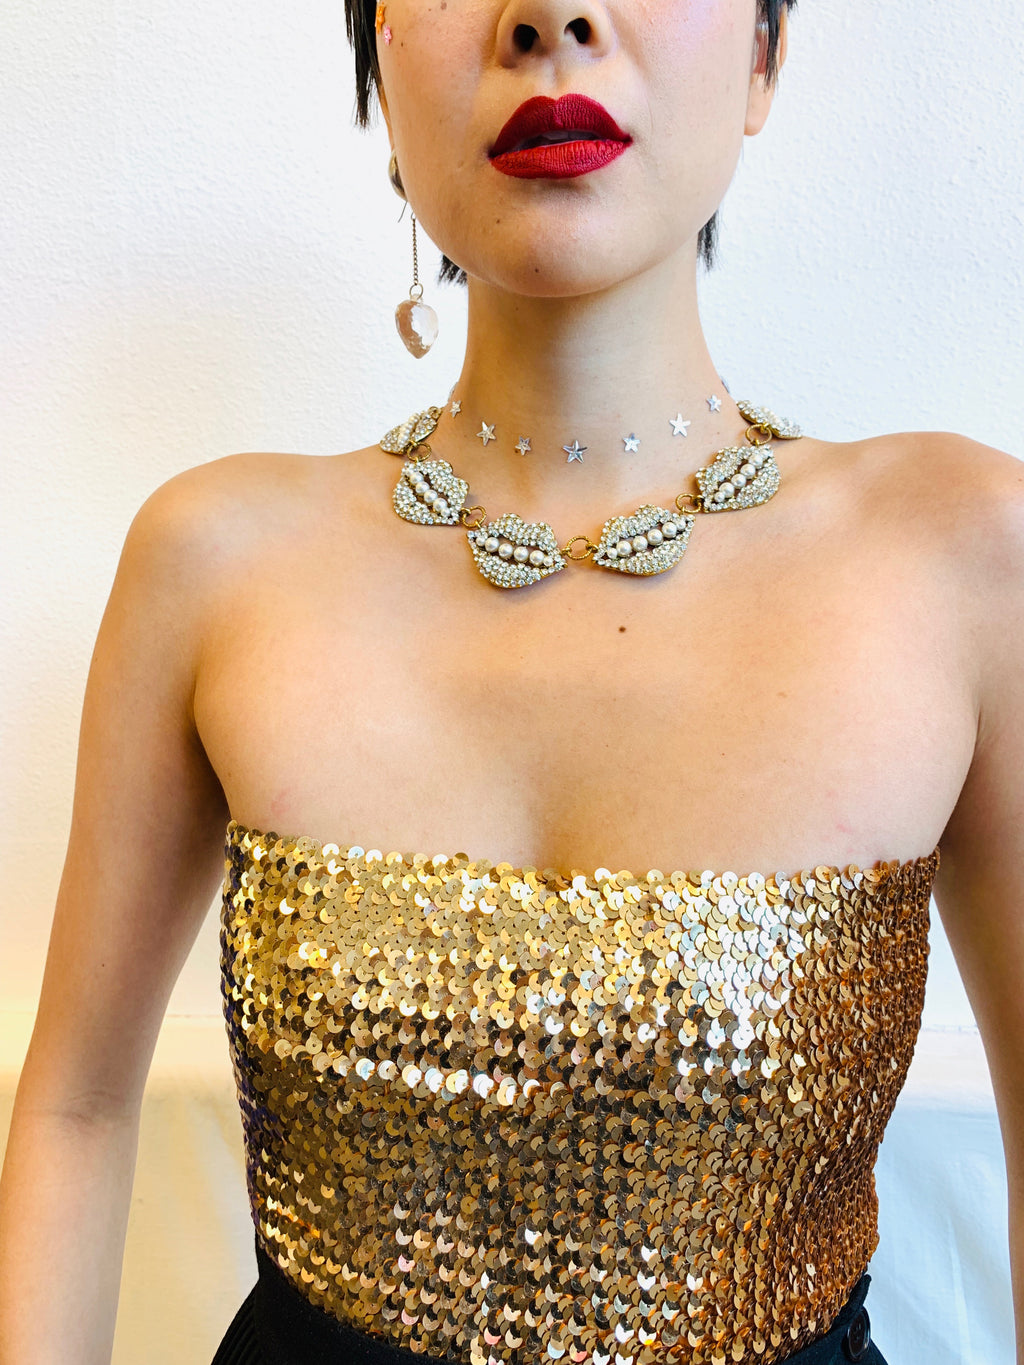 Vintage Golden Girl Tube Top